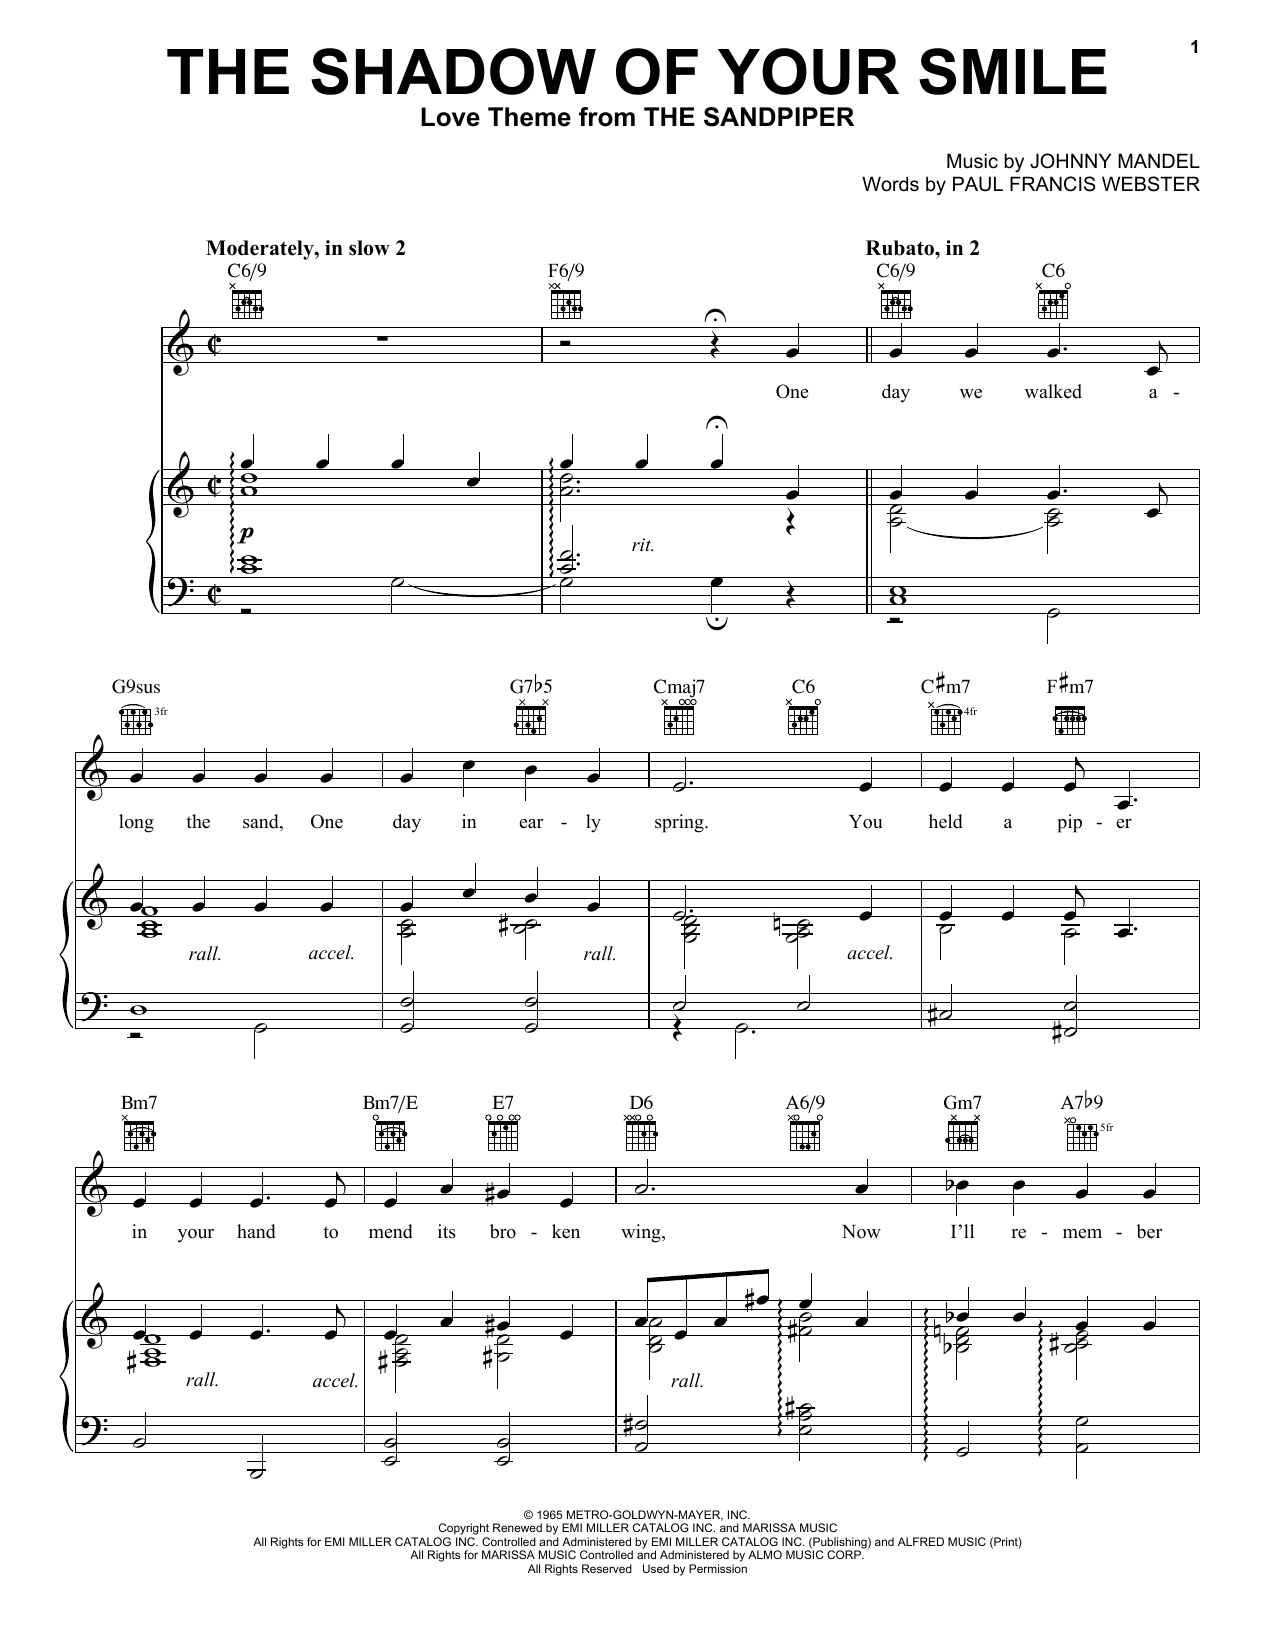 Tony Bennett The Shadow Of Your Smile sheet music notes and chords. Download Printable PDF.